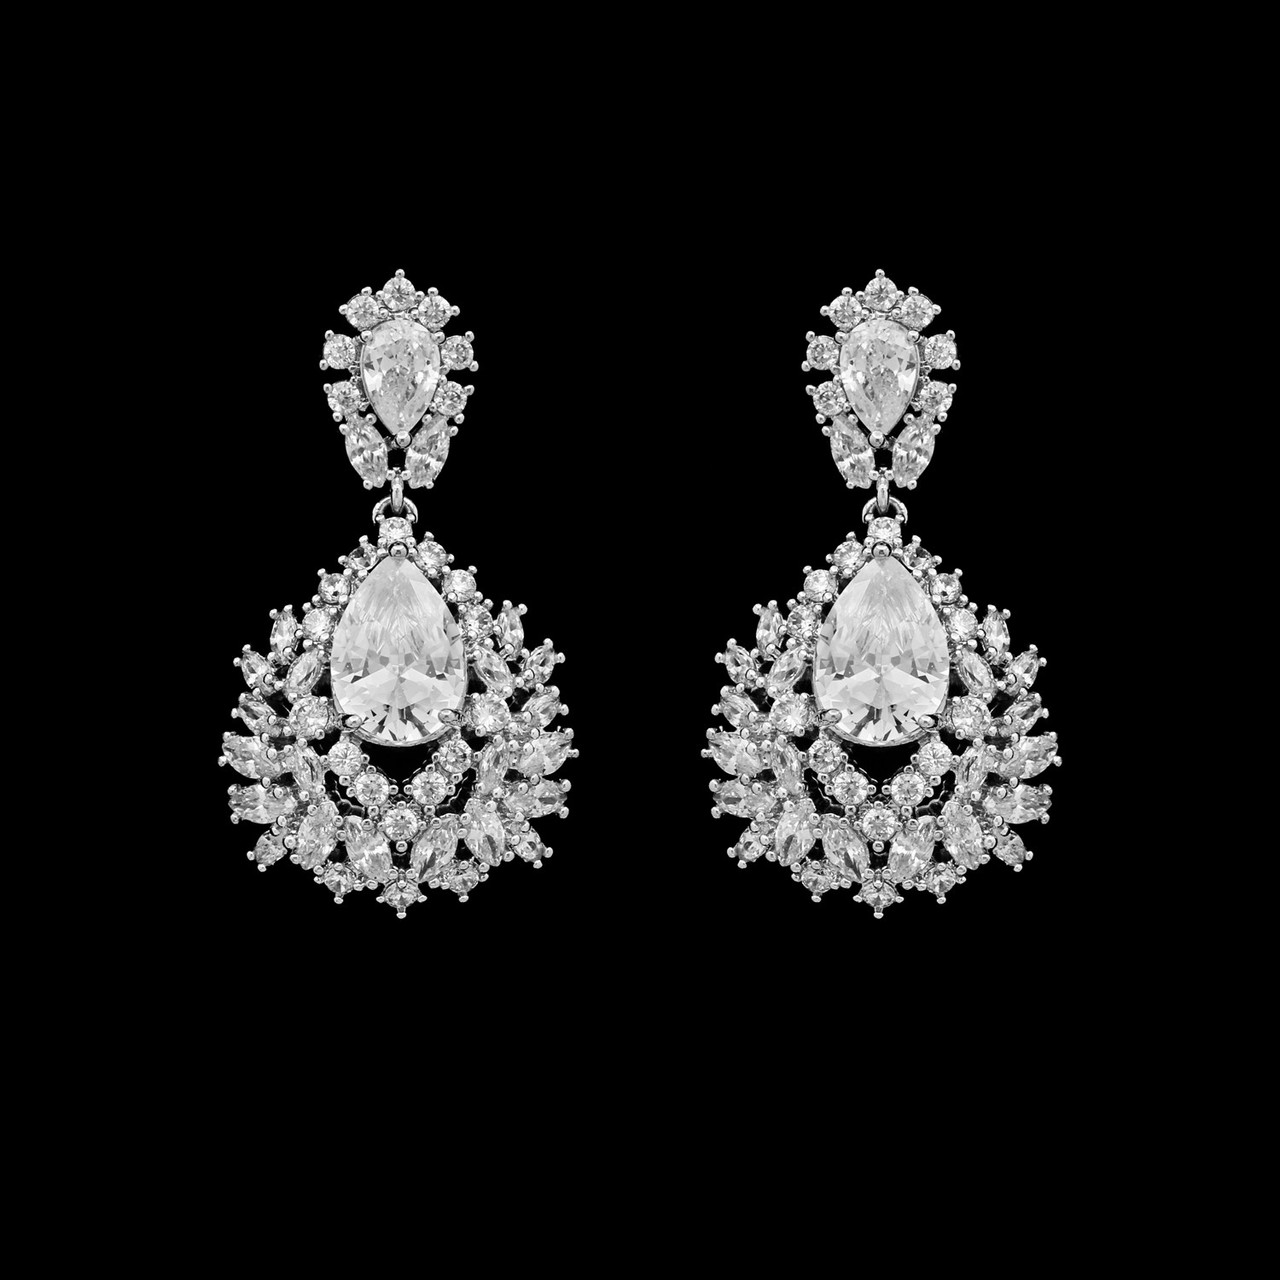 Formal Cubic Zirconia Earrings for Bridesmaids and Brides - #6656